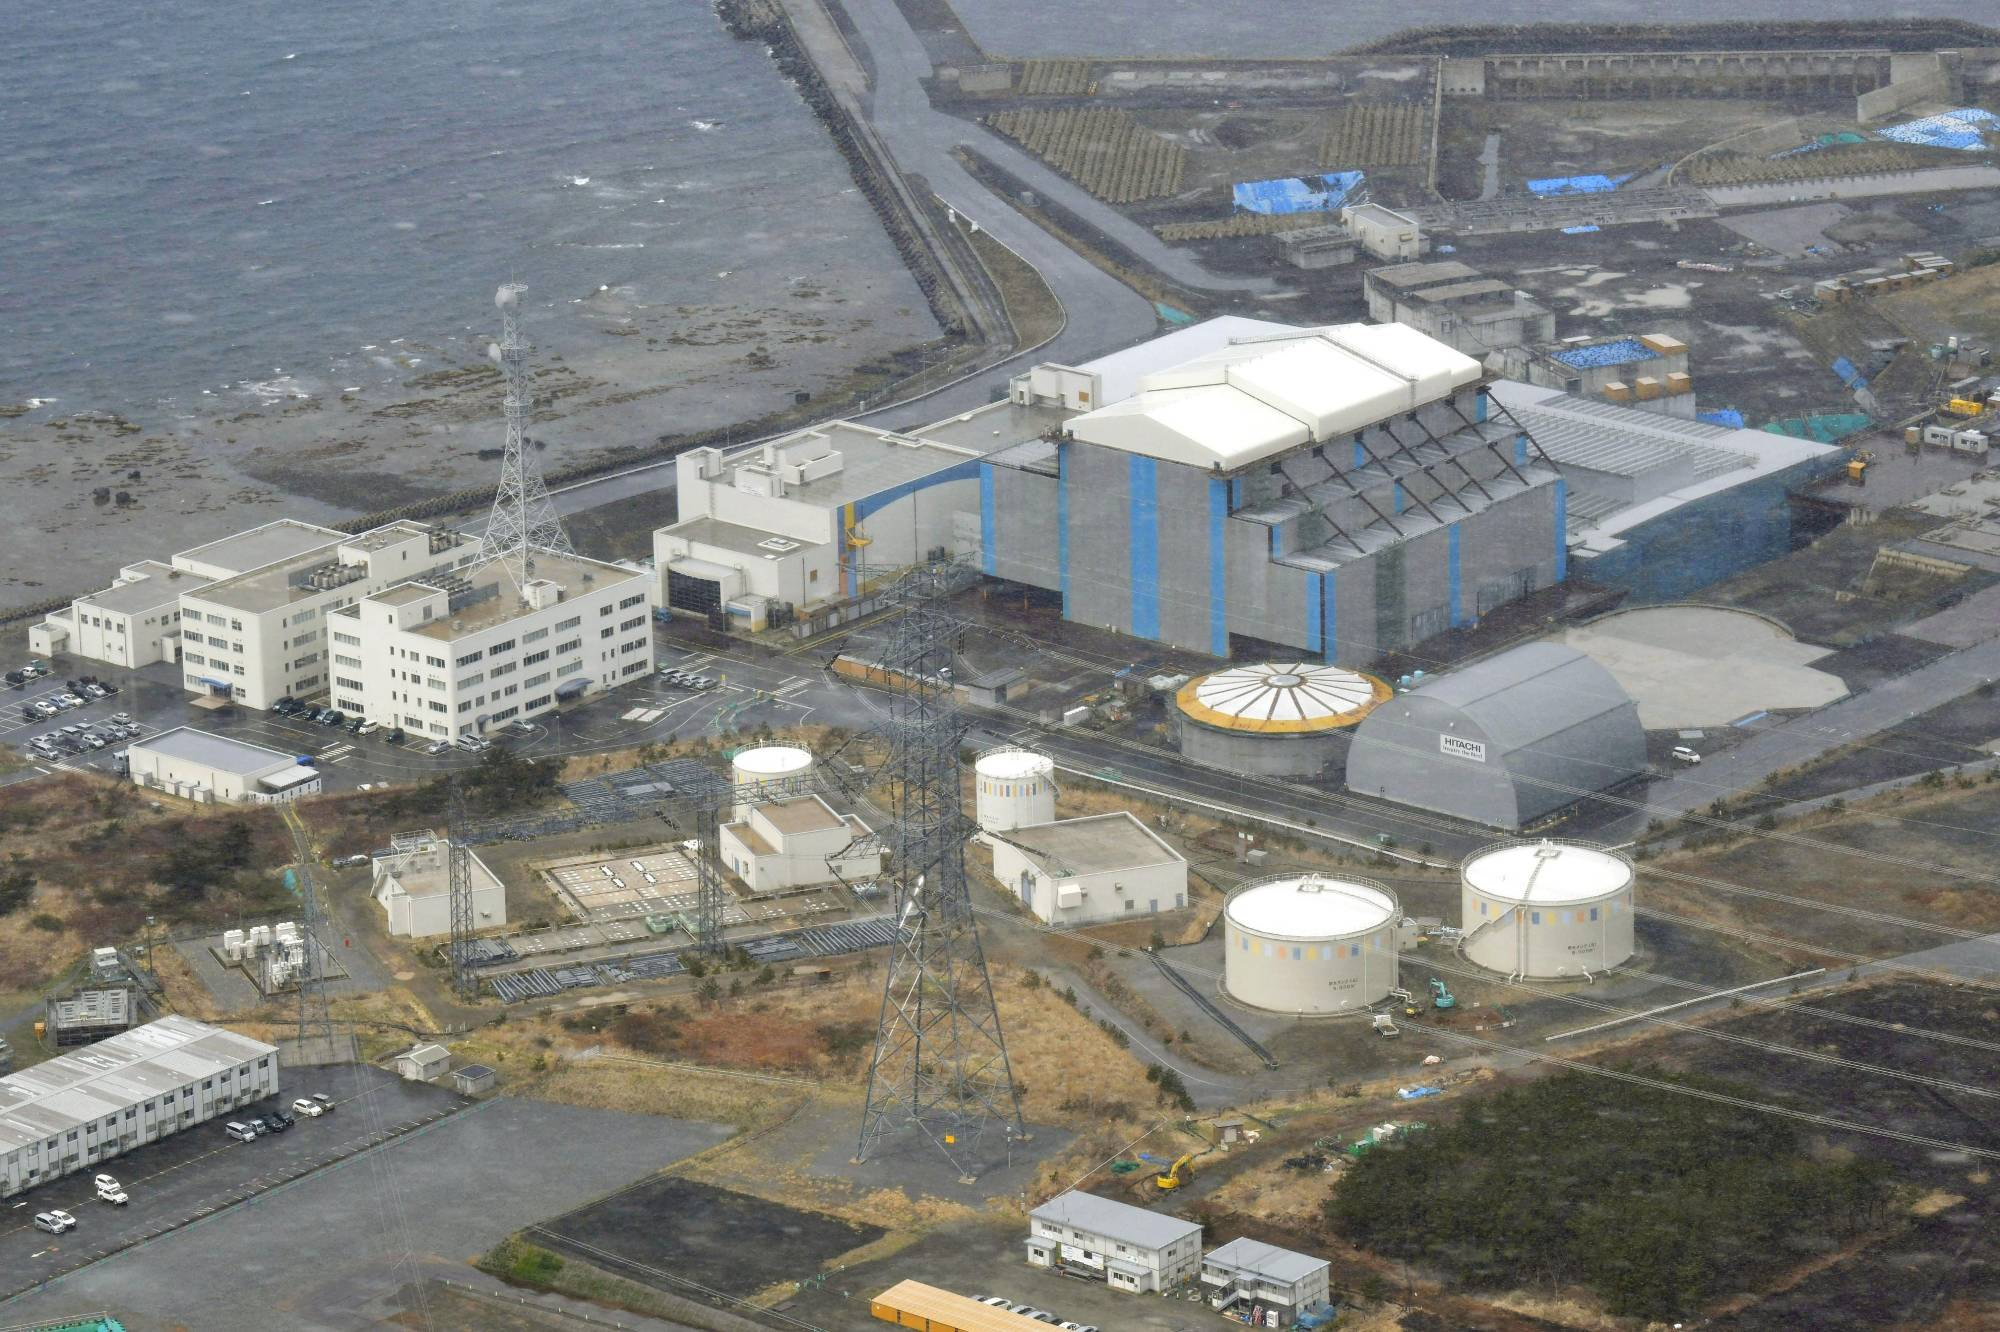 While Japan's position on nuclear power has remained unclear following the 2011 Fukushima disaster, construction of a new nuclear plant in Oma, Aomori Prefecture, has progressed. | KYODO